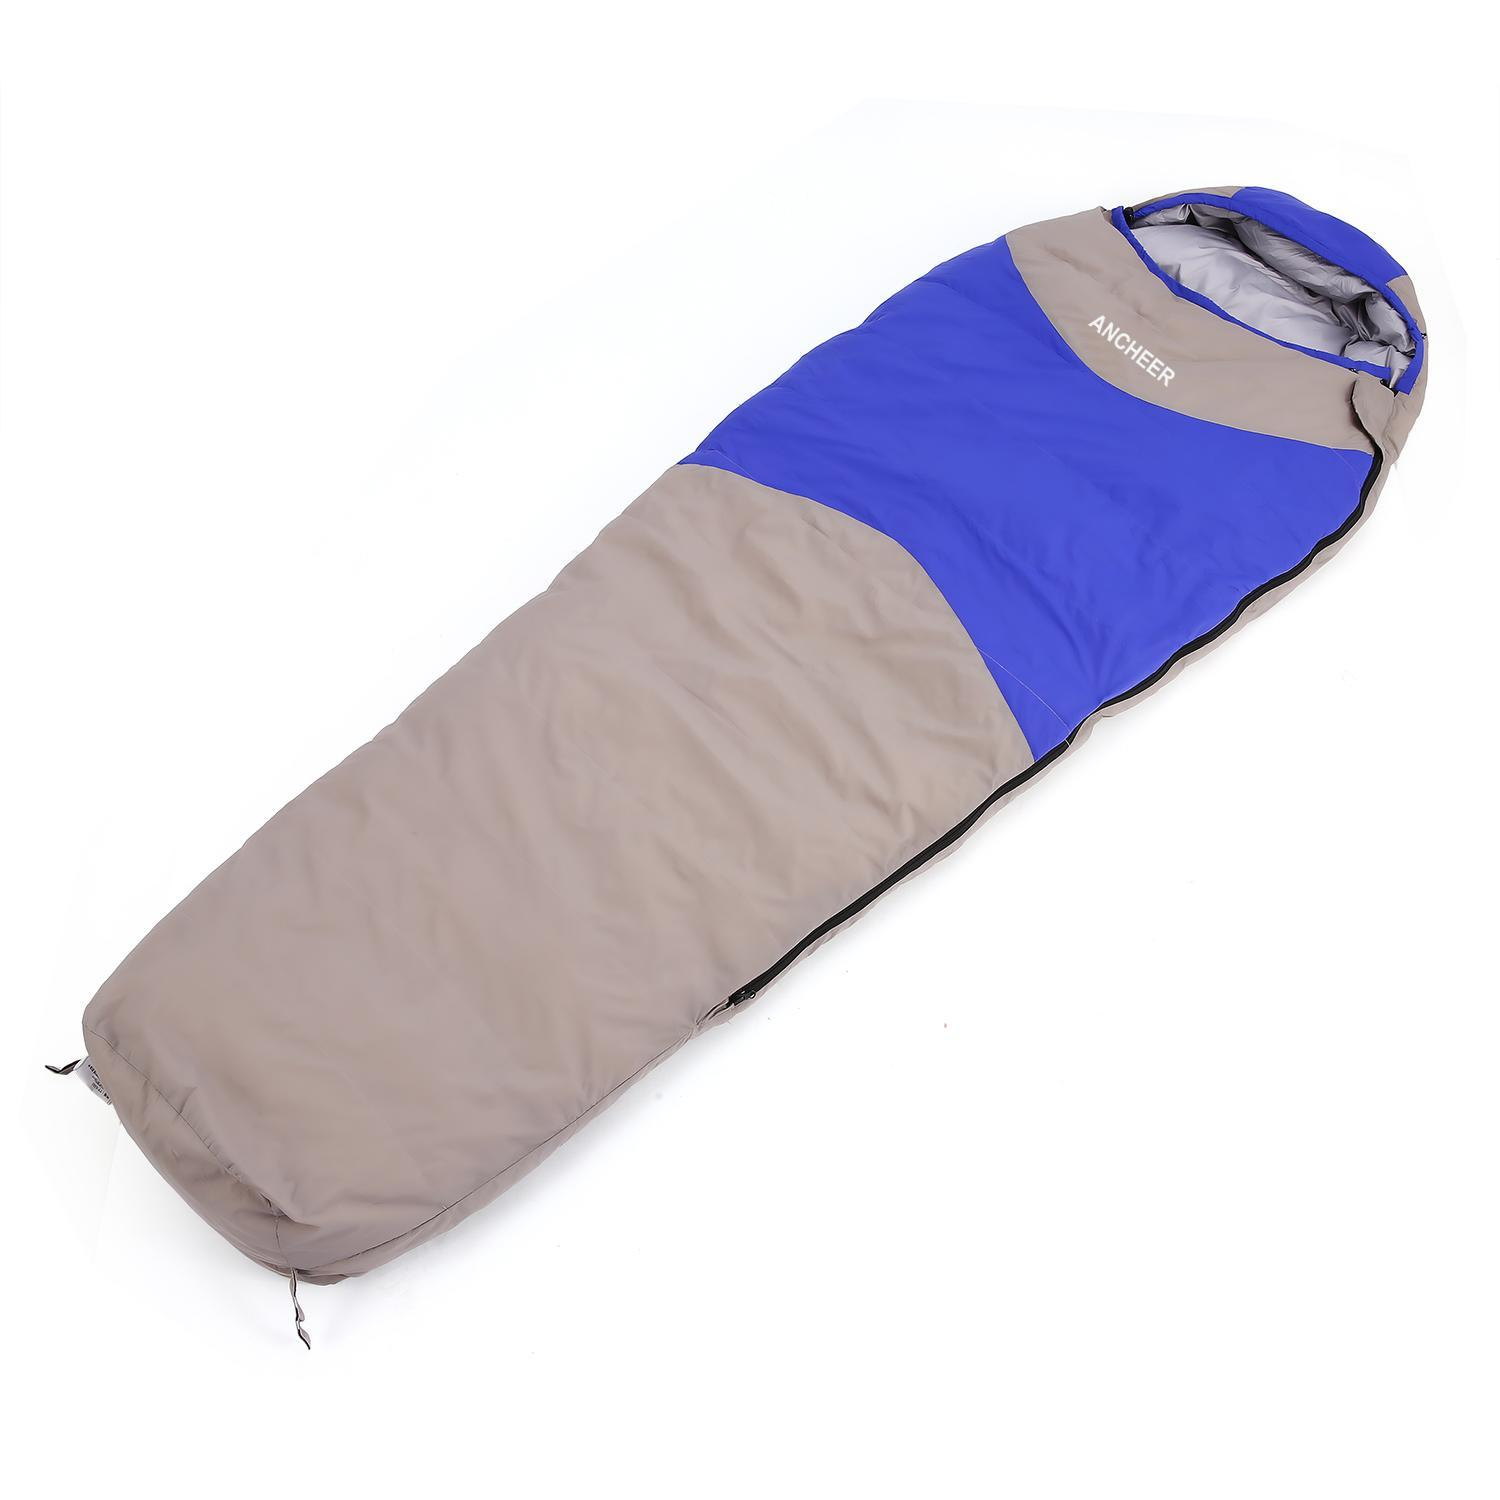 15 De.gree Foldable Ultralight Mummy Down Sleeping Bag Winter for Camping Hiking Travel SPHP by